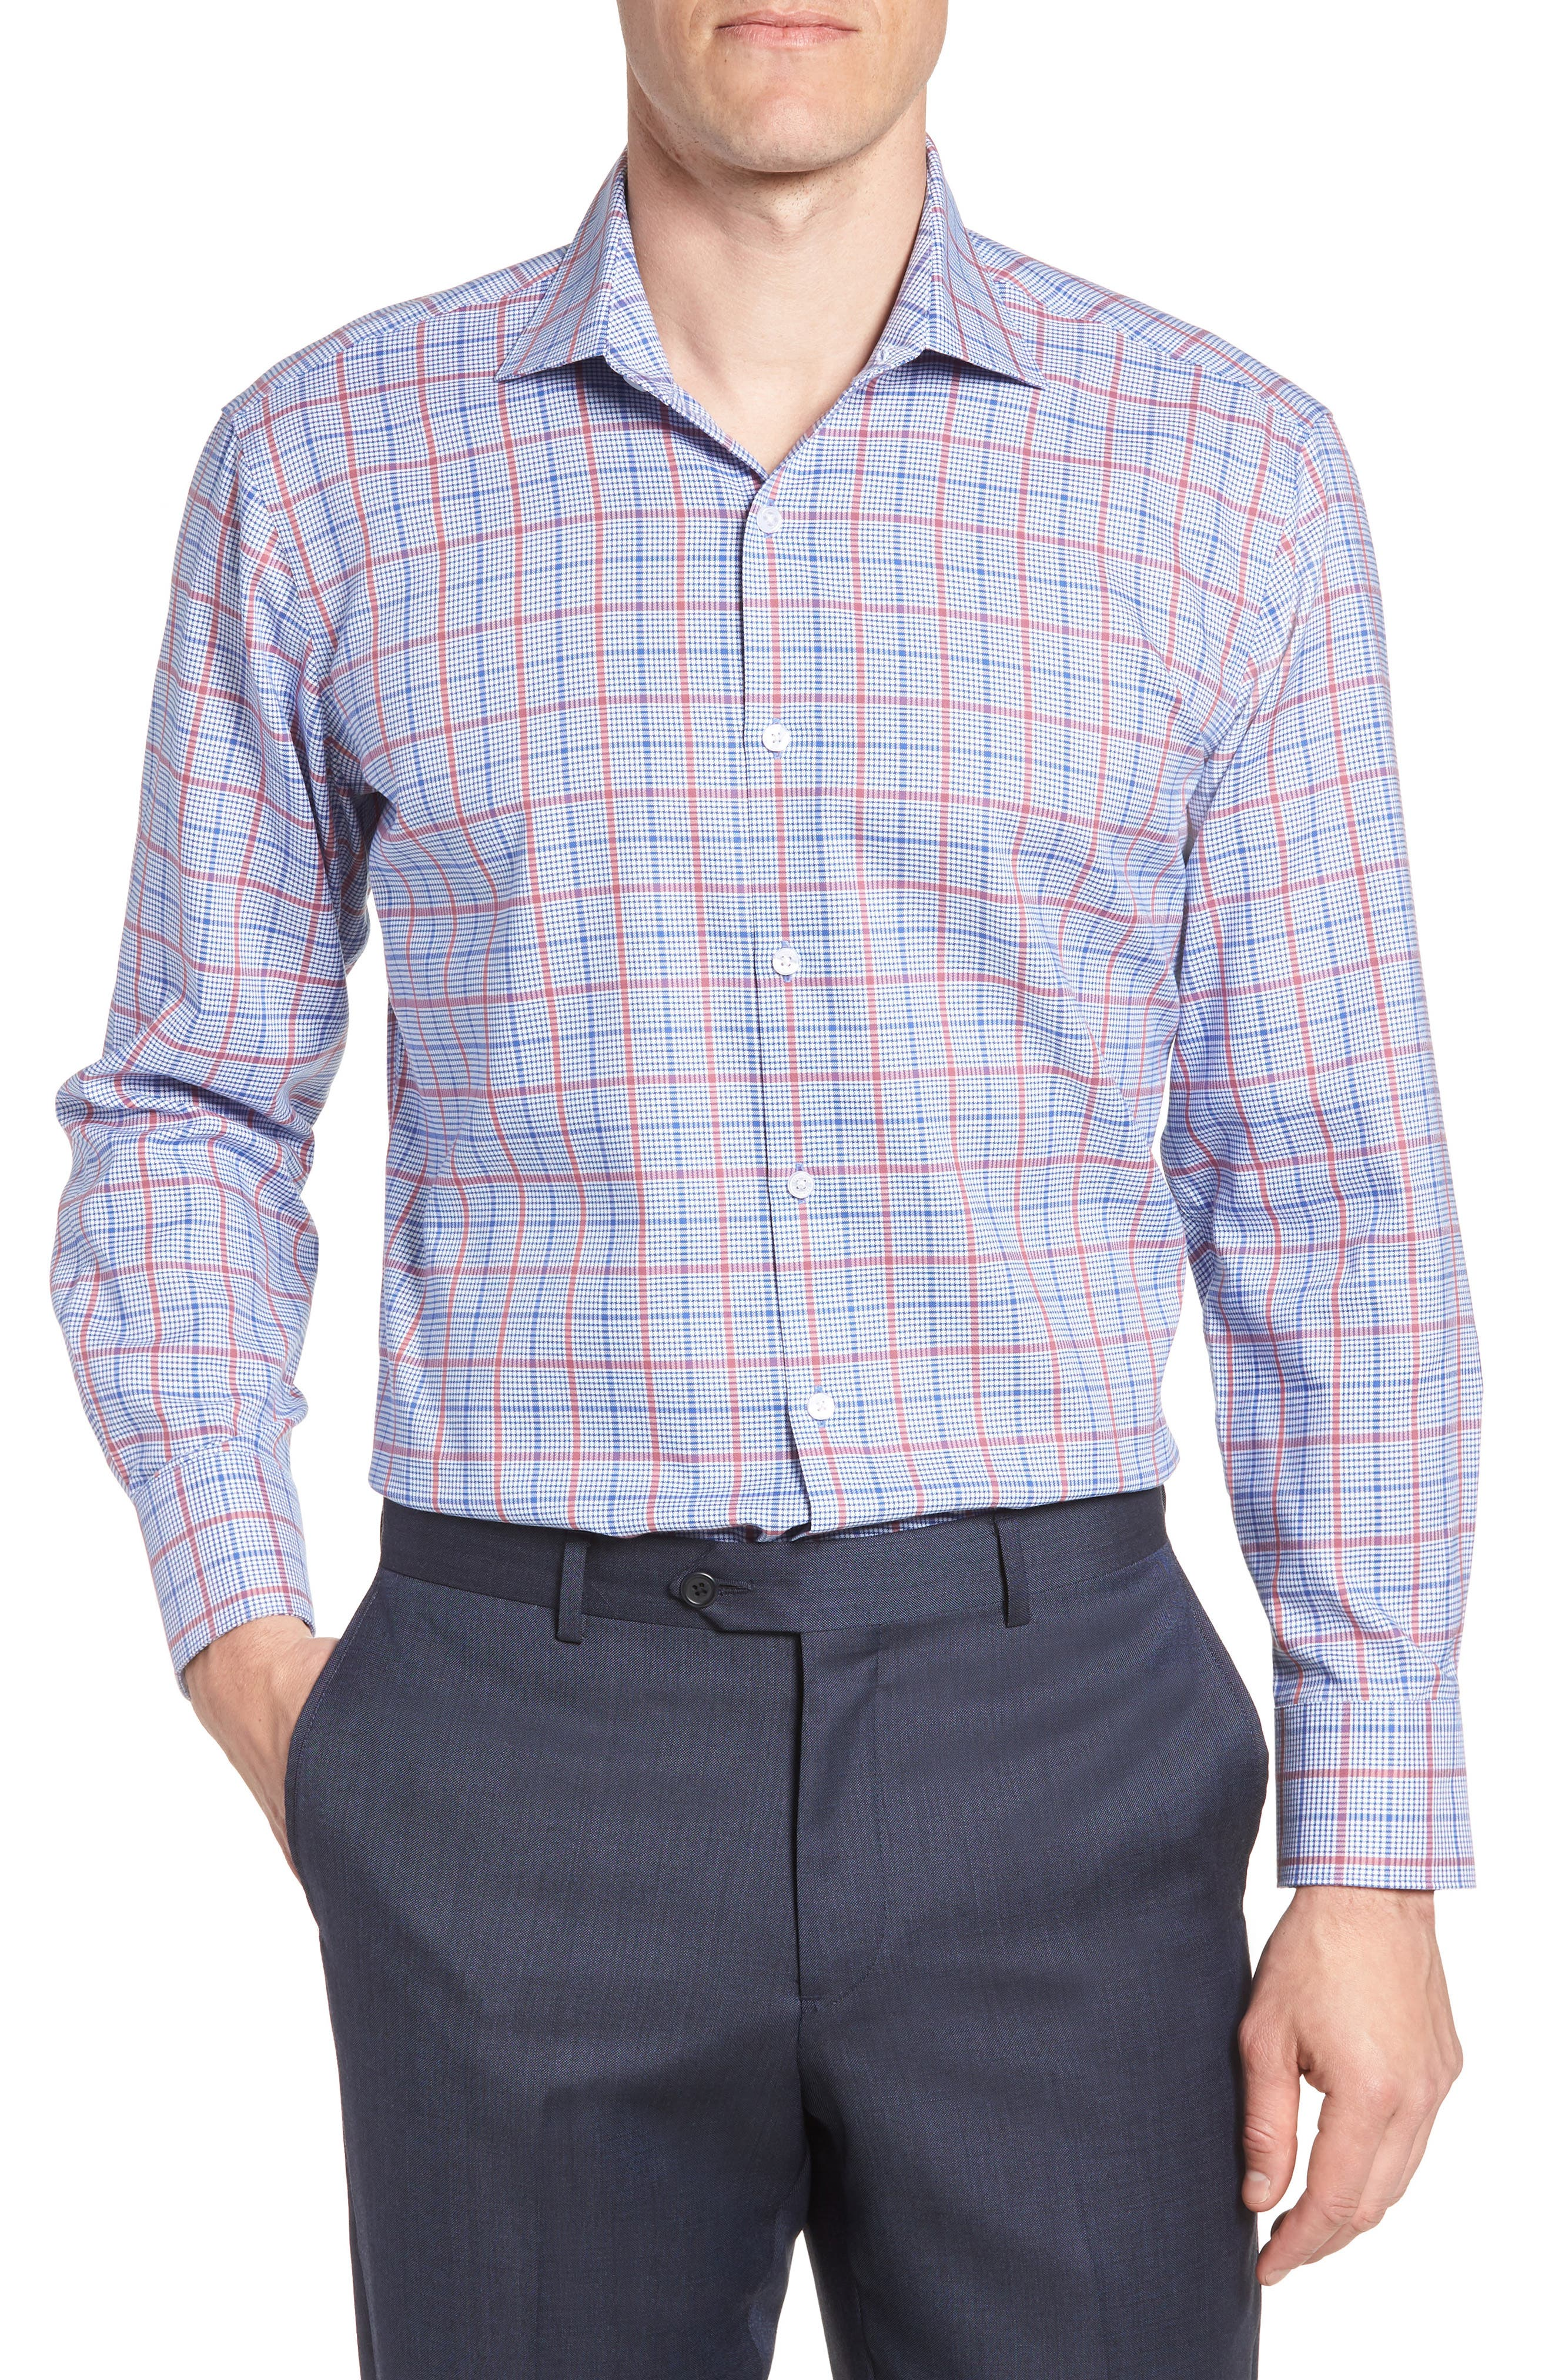 Kai Trim Fit Check Dress Shirt,                         Main,                         color, Red/ Blue